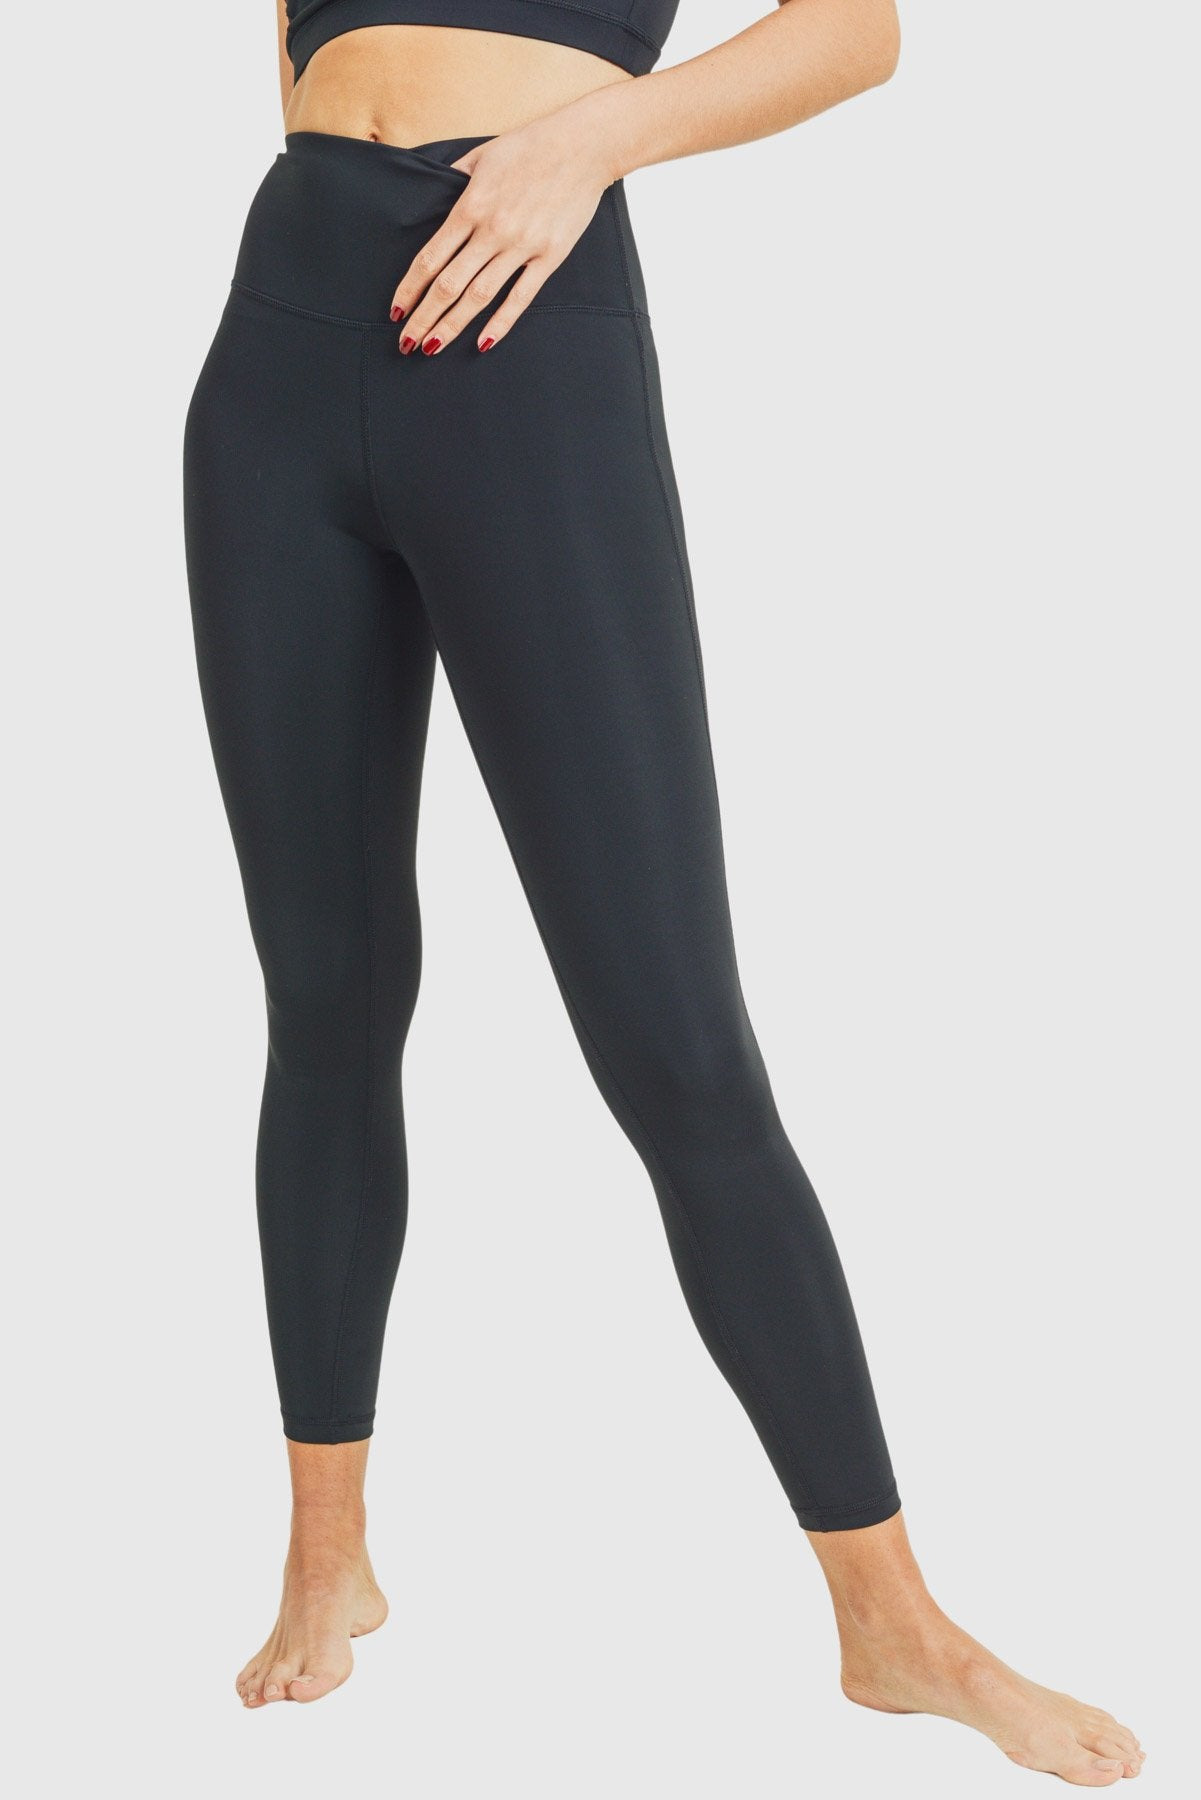 Essential Performance Highwaist Leggings - Mono B Athleisure